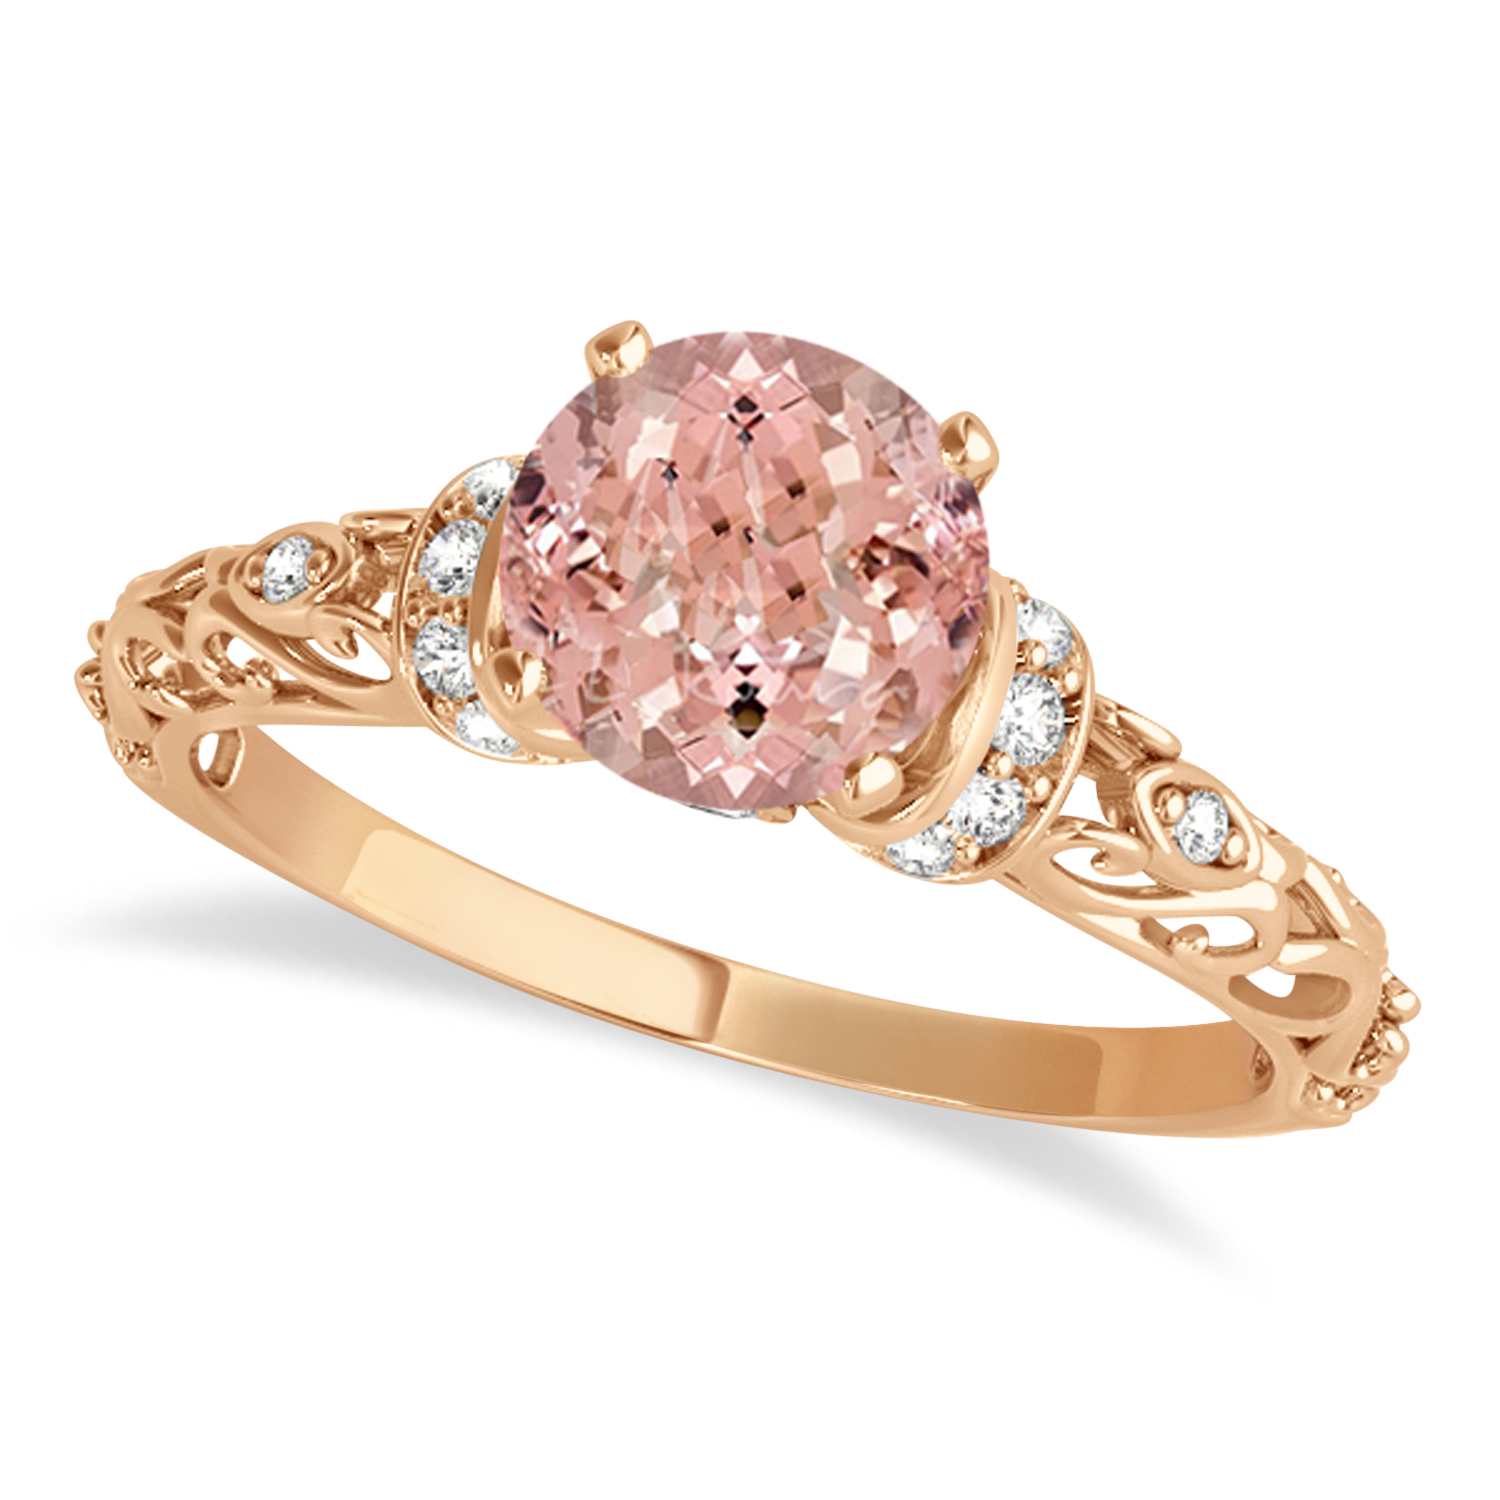 Morganite & Diamond Antique Style Engagement Ring 14k Rose Gold (1.62ct)